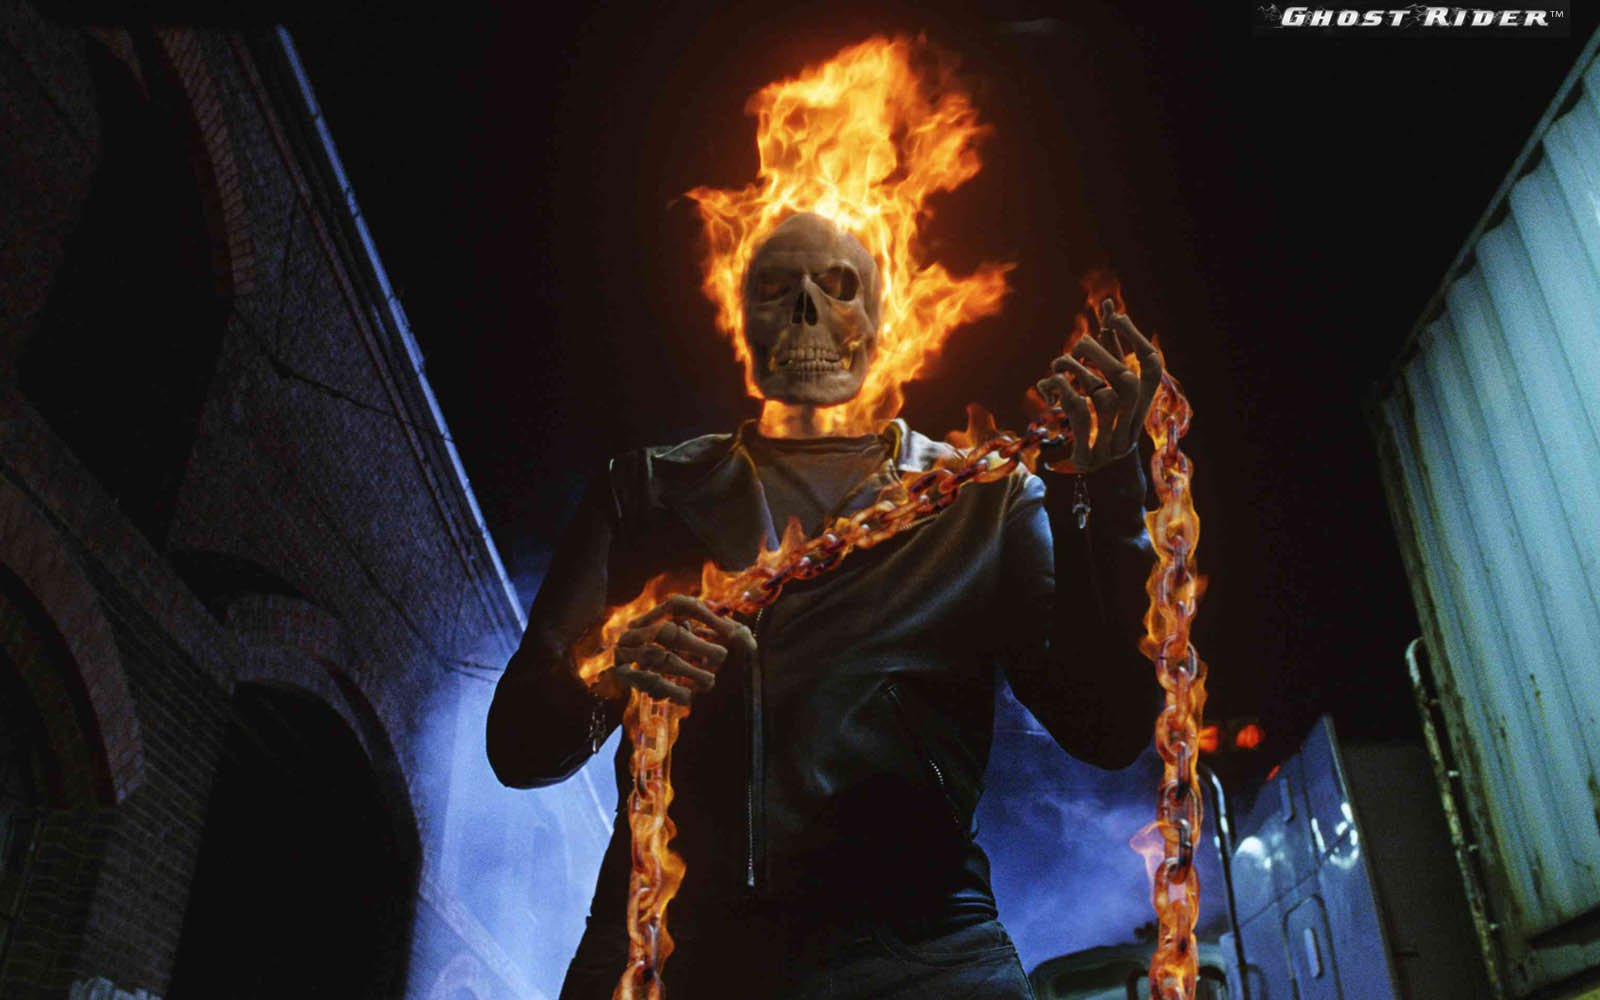 Blue Ghost Rider Wallpaper Ghost rider wallpapers 1600x1000